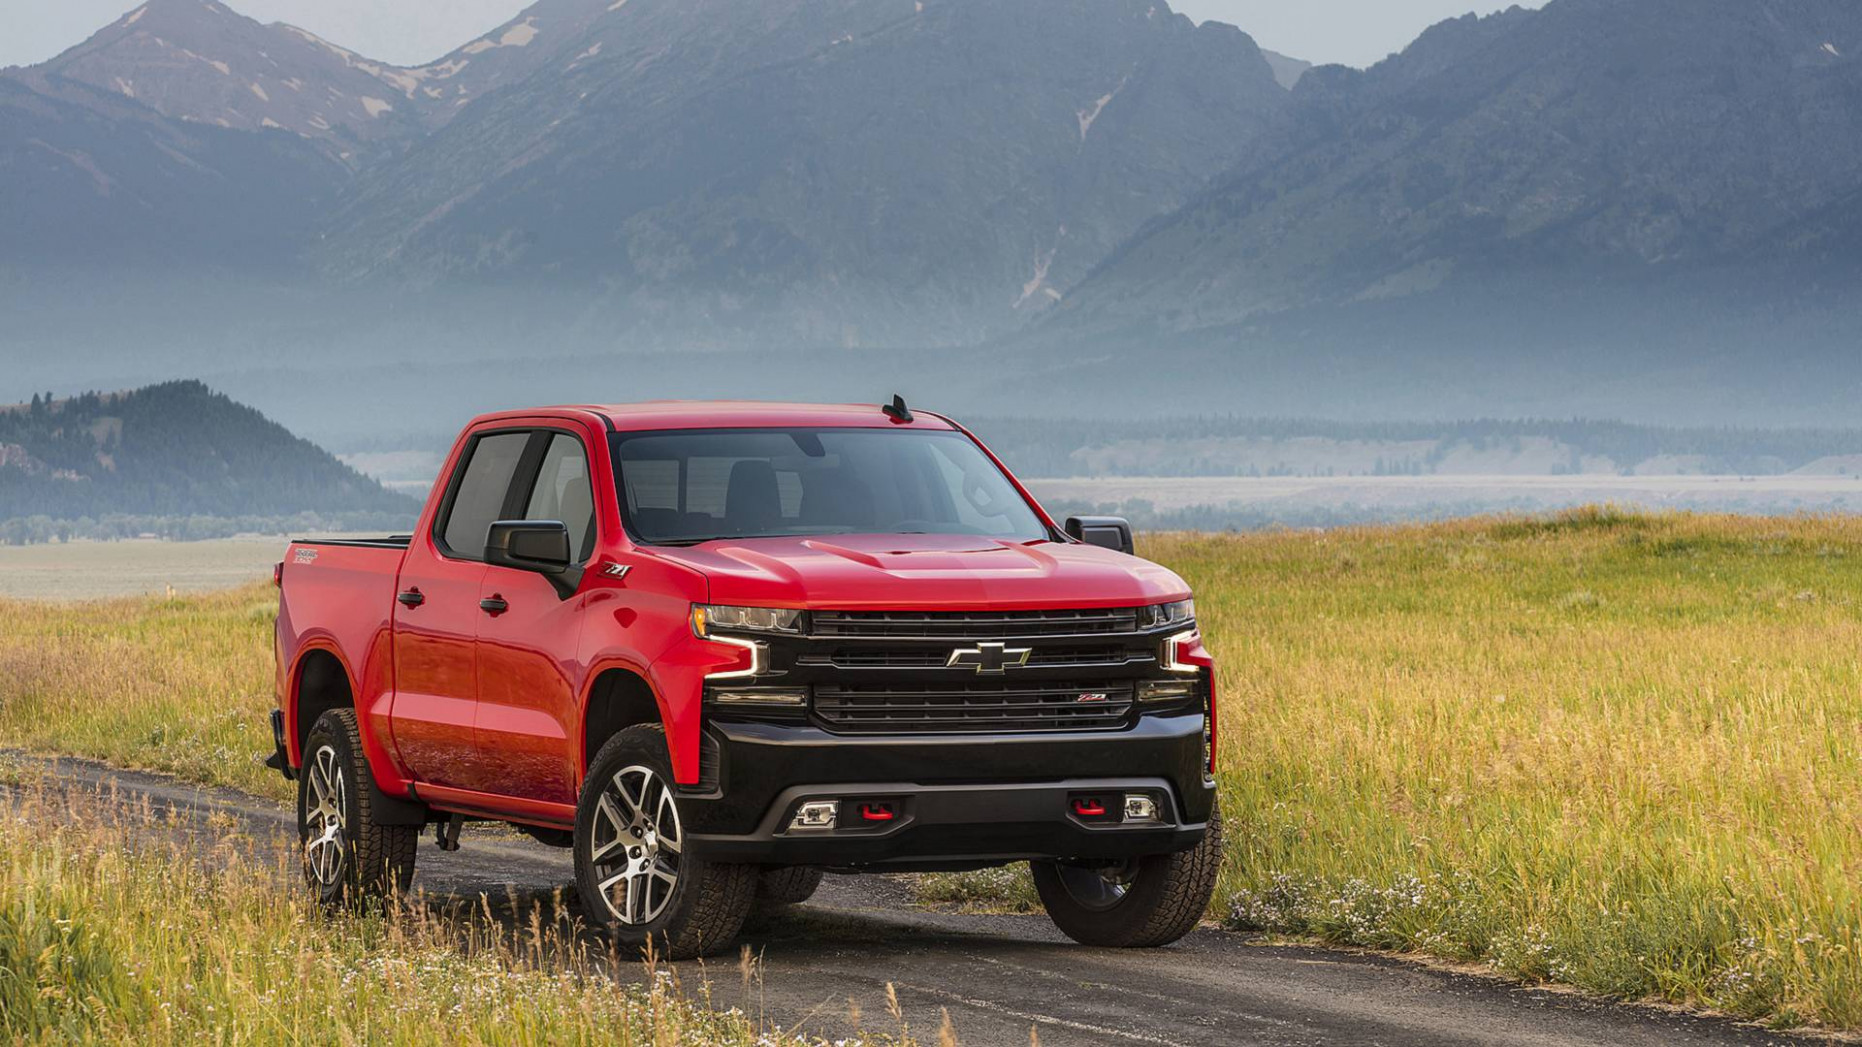 Style 2022 Chevy Reaper